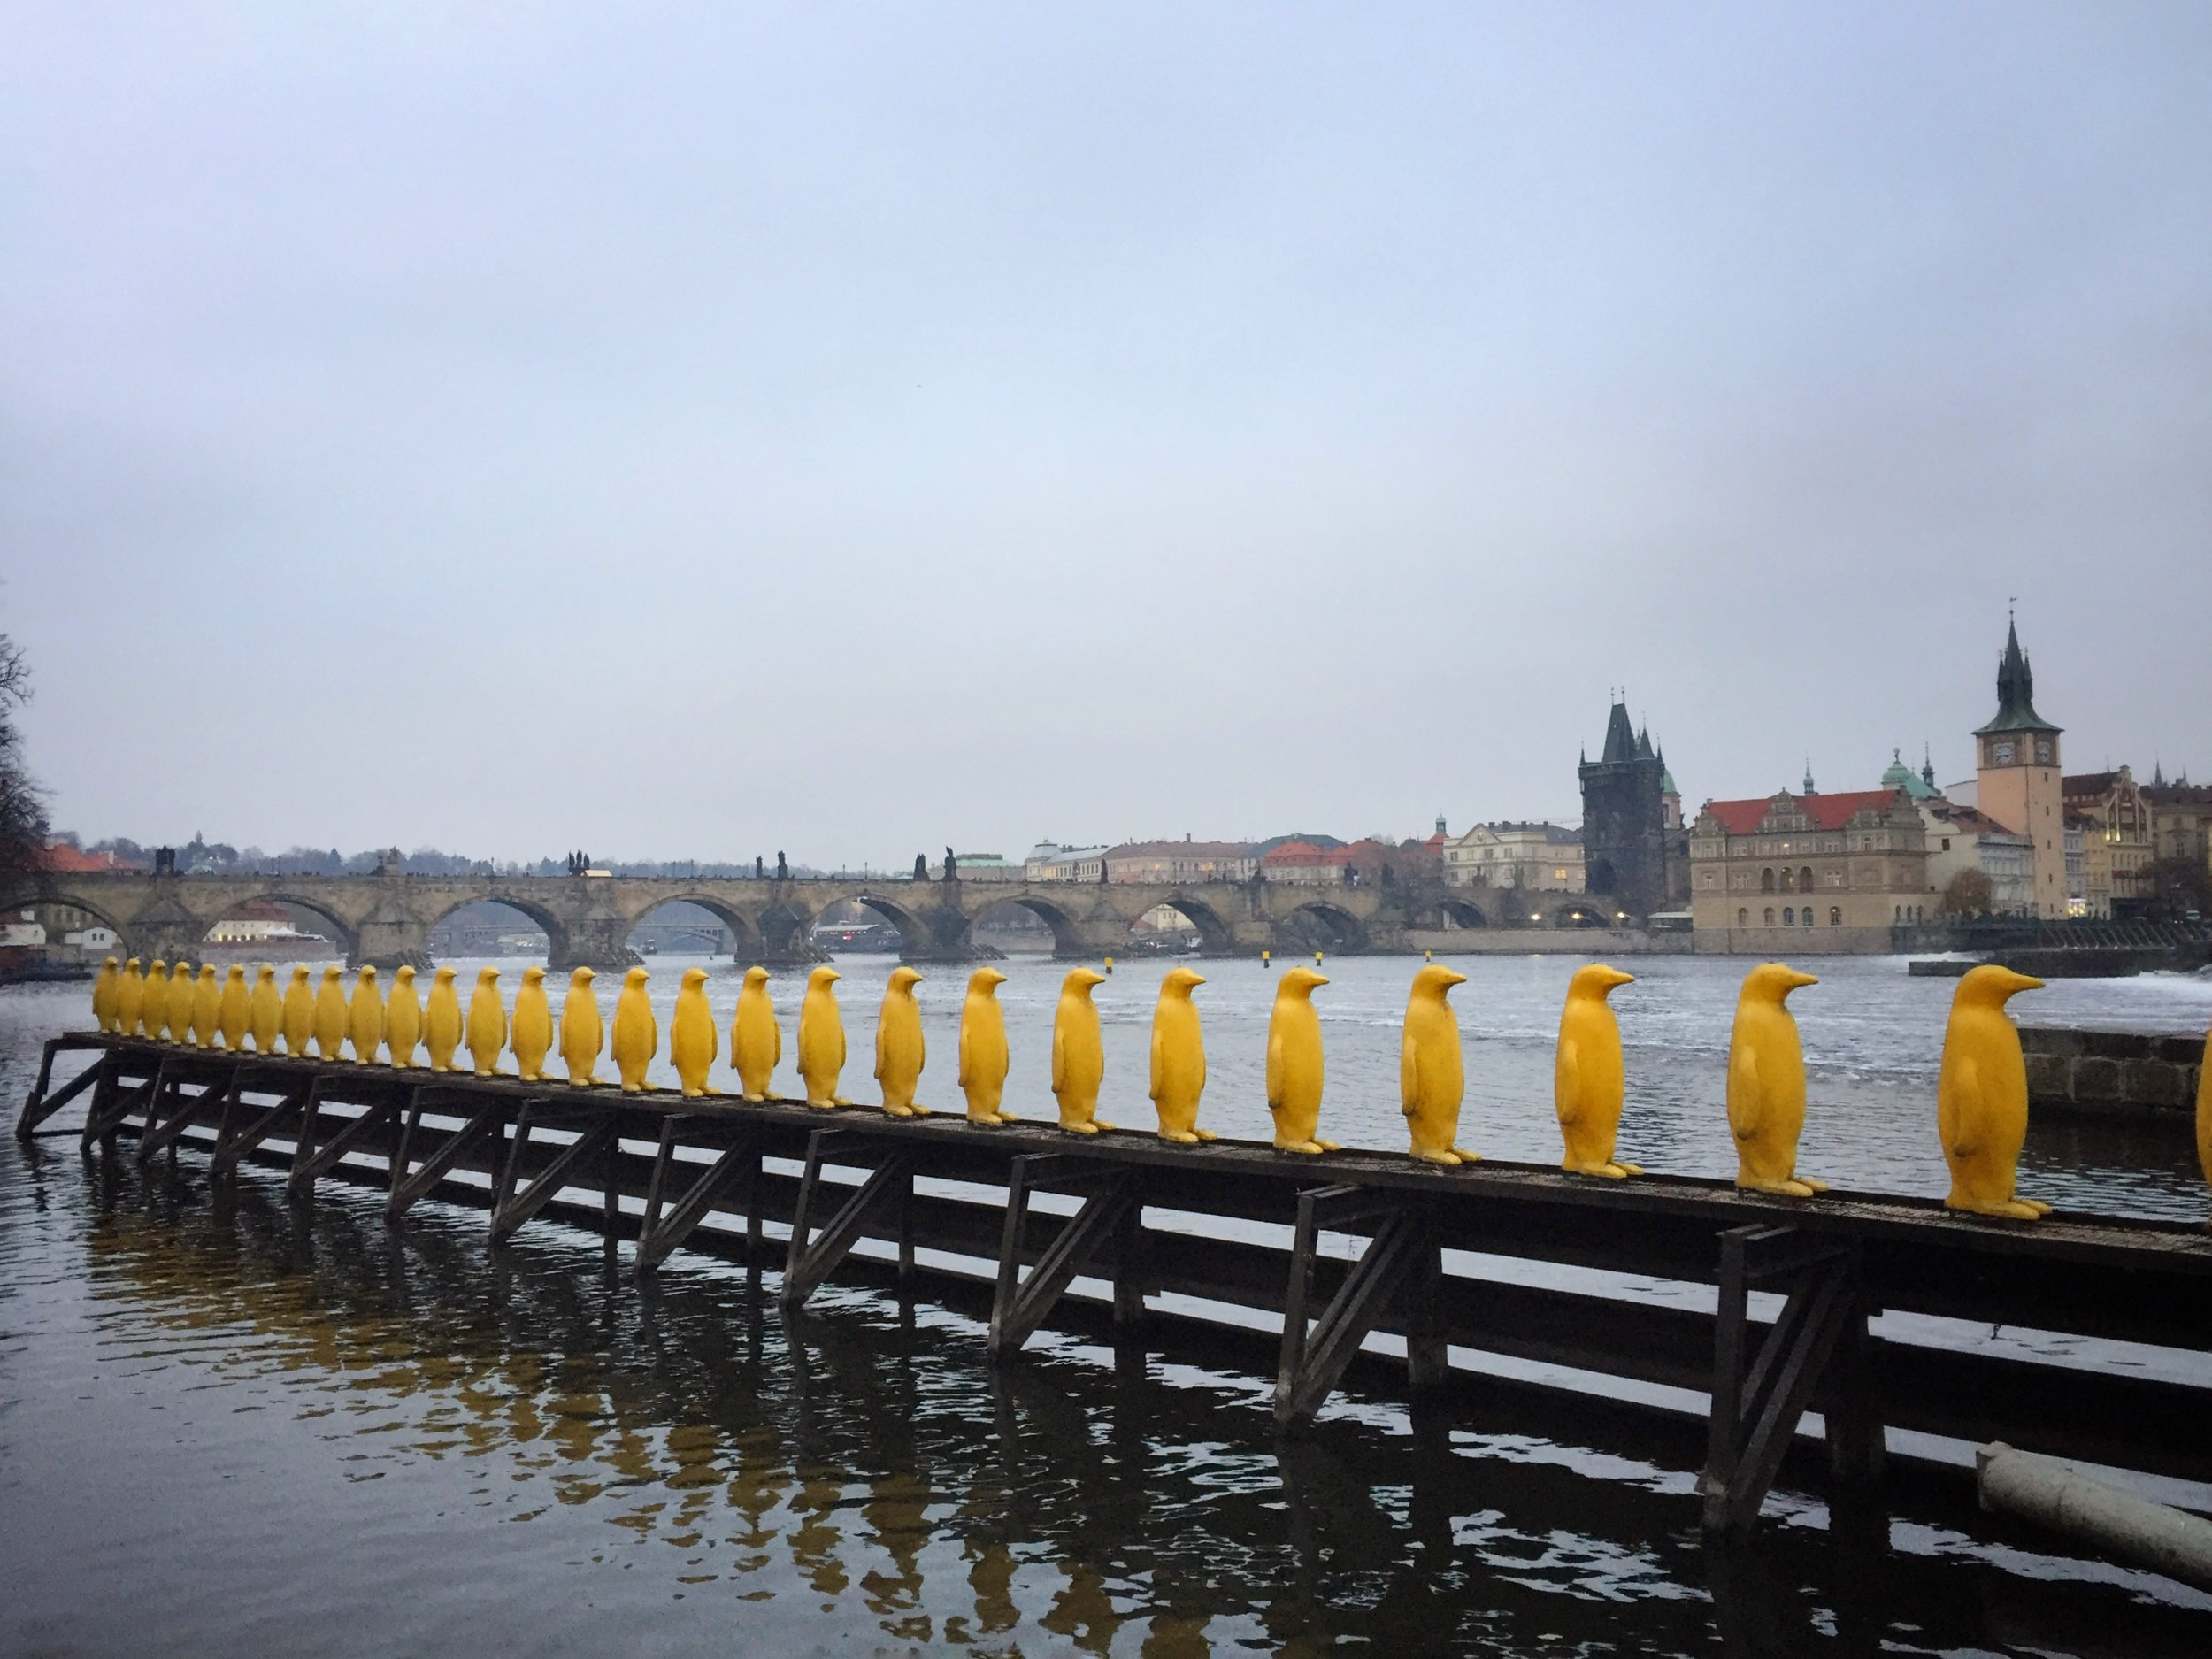 Cracking Art Group's yellow penguins, made from recycled water bottles rescued from landfill sites